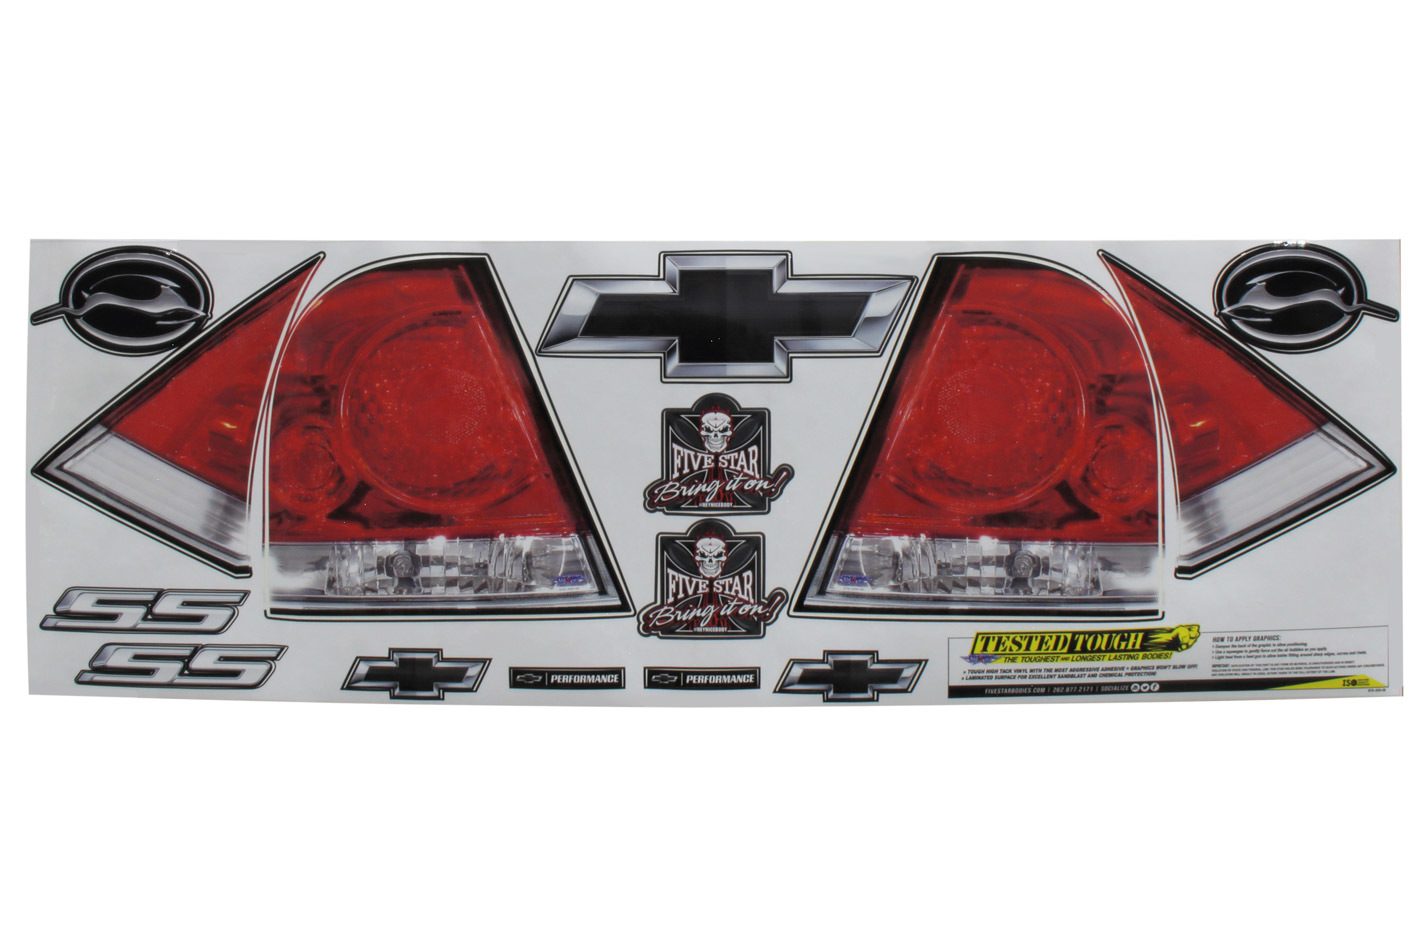 Fivestar Tail Only Graphics 08 Impala SS